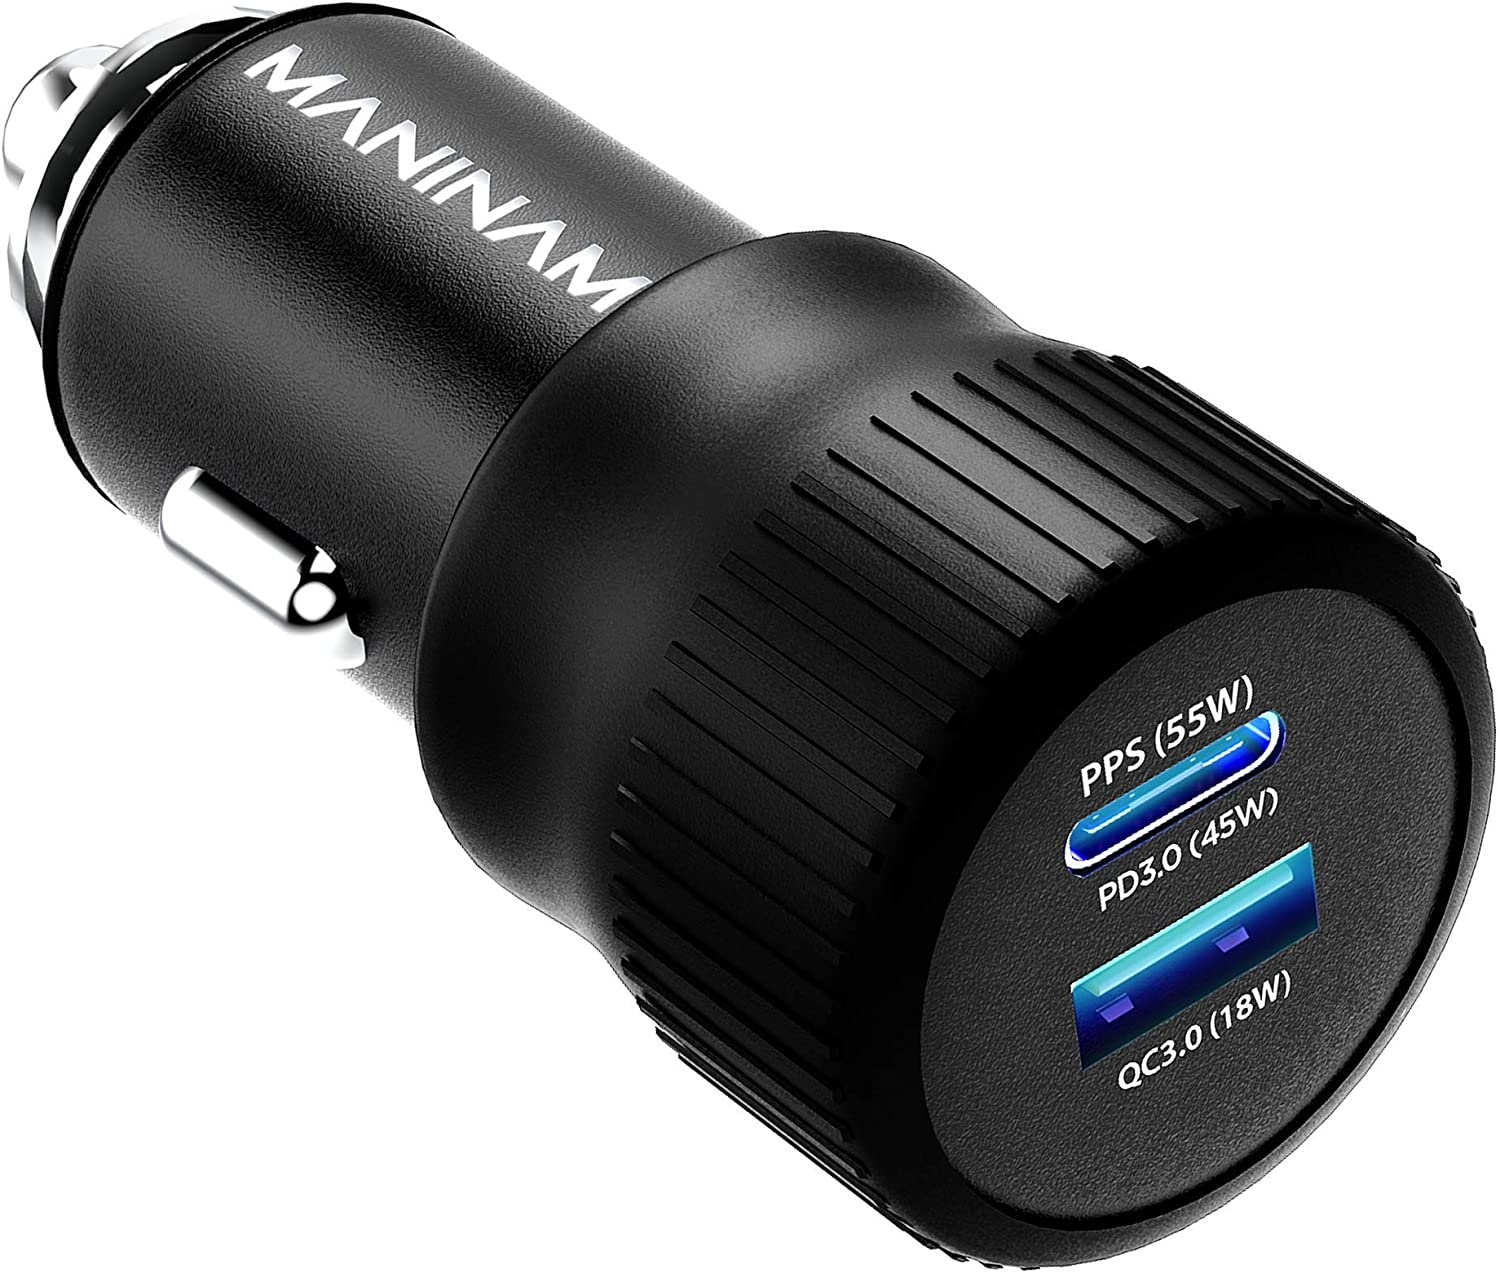 MANINAM Super Fast USB C Car Charger for Samsung S21 S20 Ultra Note 20 10 Plus Super Fast Charging 2.0 [73W Turbotive] Pro 55W PPS Charger Adapter for iPhone 12 11 MacBook Laptops (Cable Not Included)